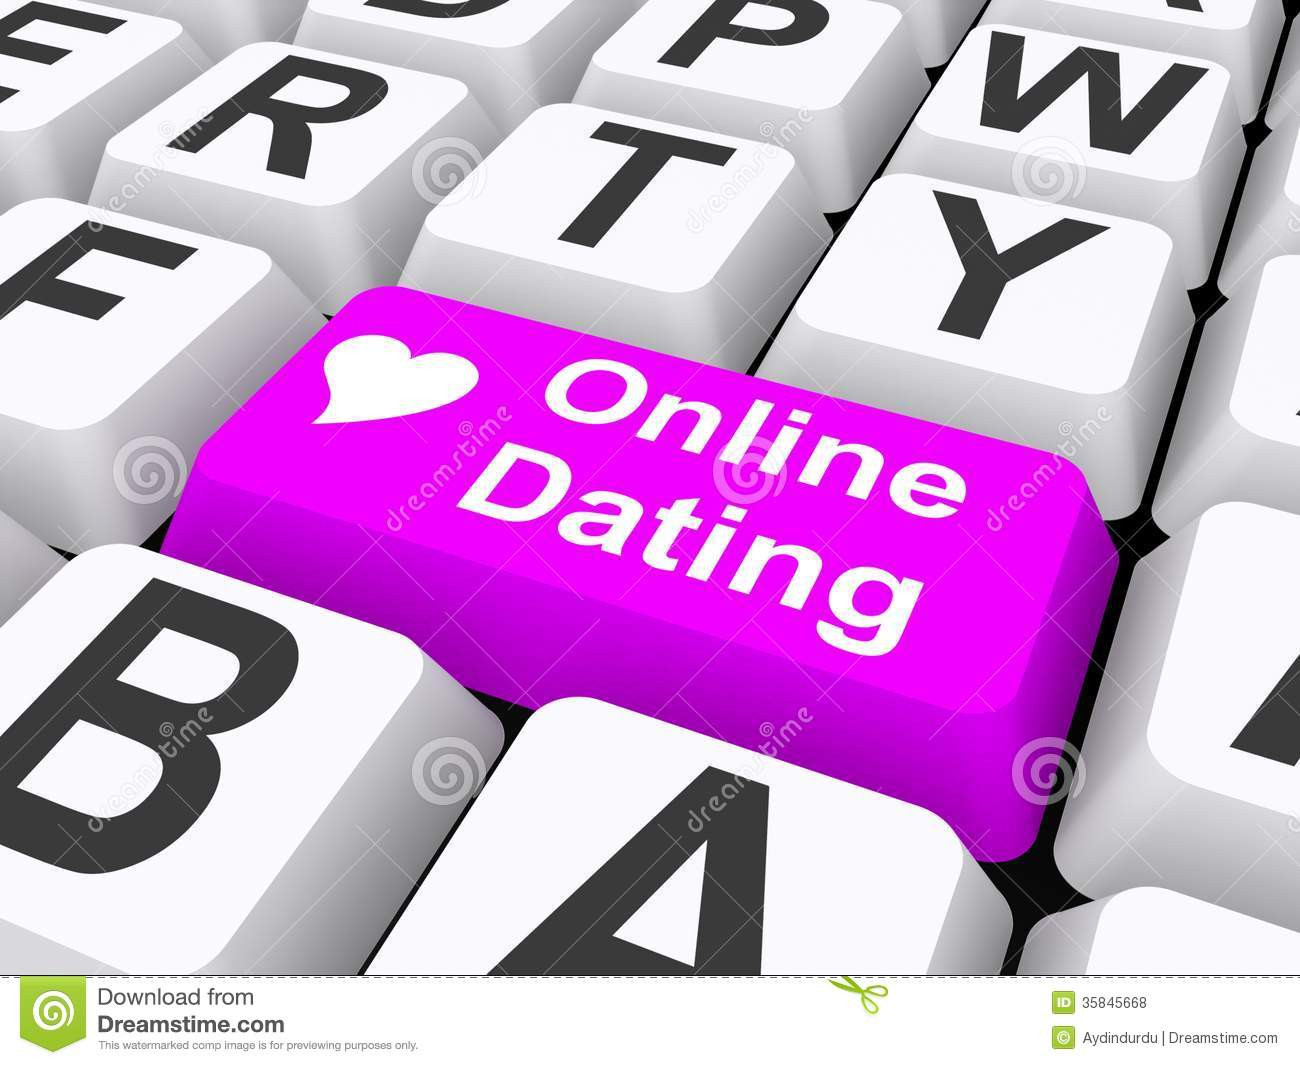 free online personals in brookings Brookings's best free dating site 100% free online dating for brookings singles at mingle2com our free personal ads are full of single women and men in brookings looking for serious relationships, a little online flirtation, or new friends to go out with.